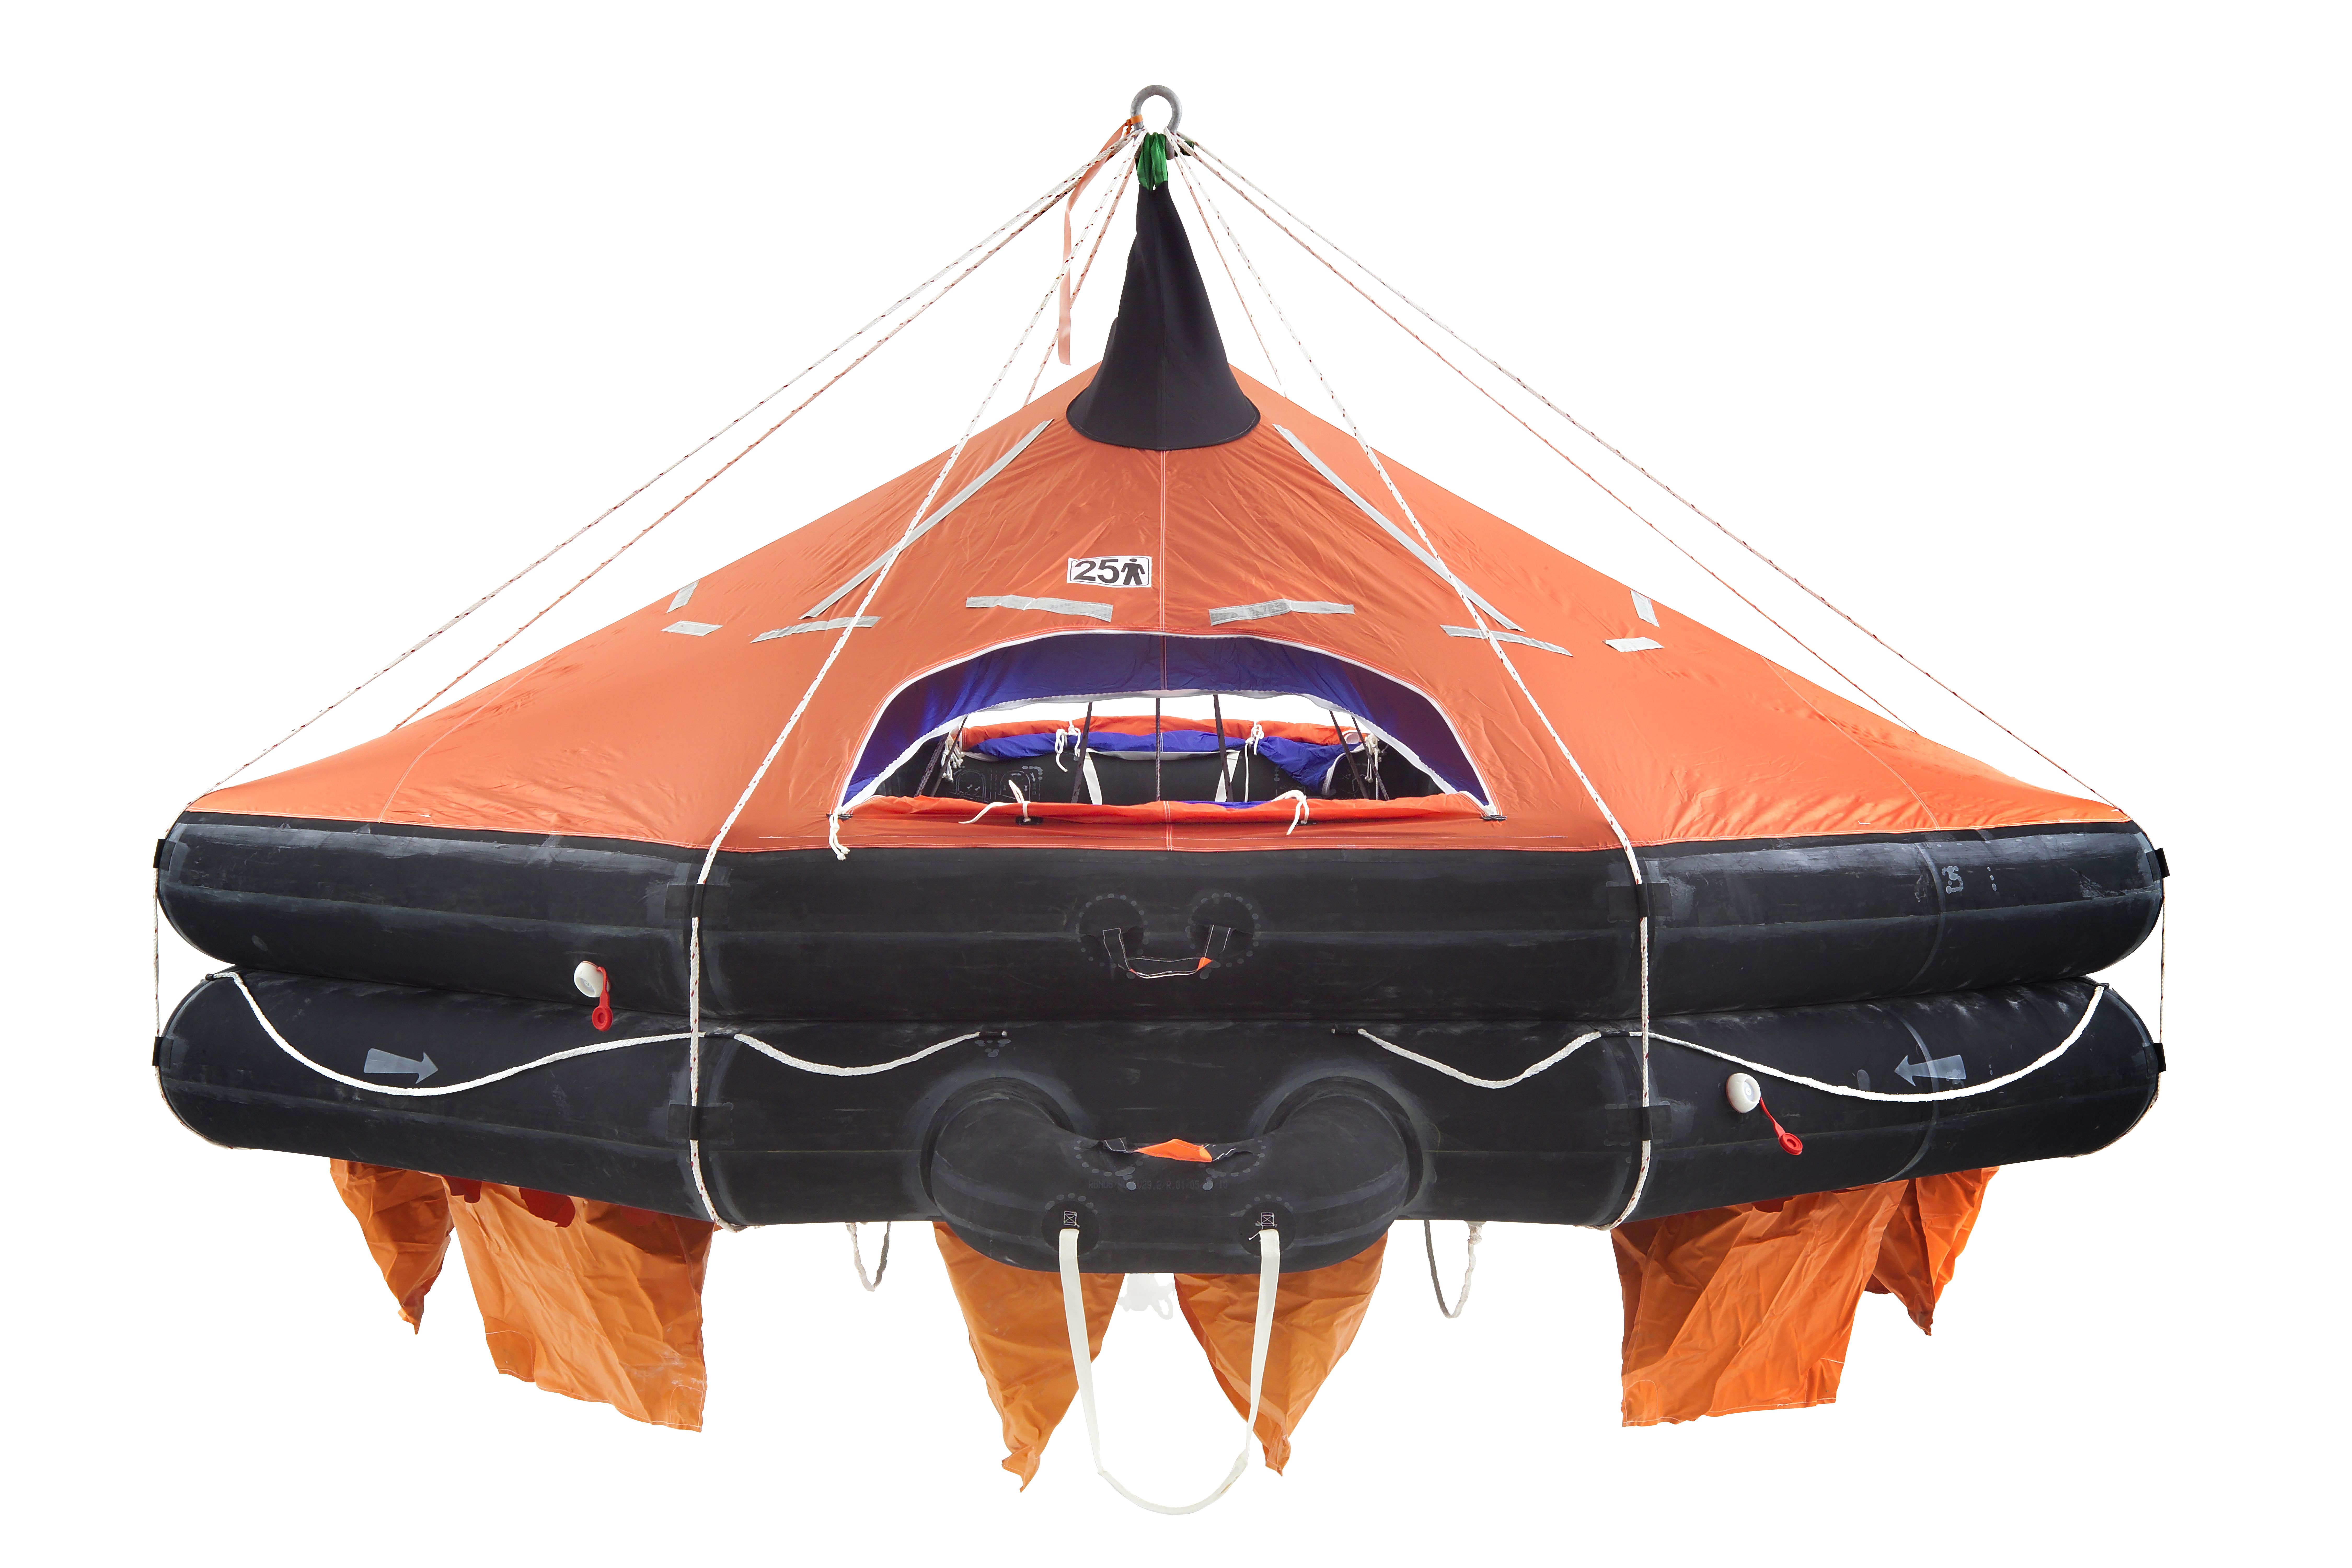 VIKING DAVIT-LAUNCHED LIFERAFT